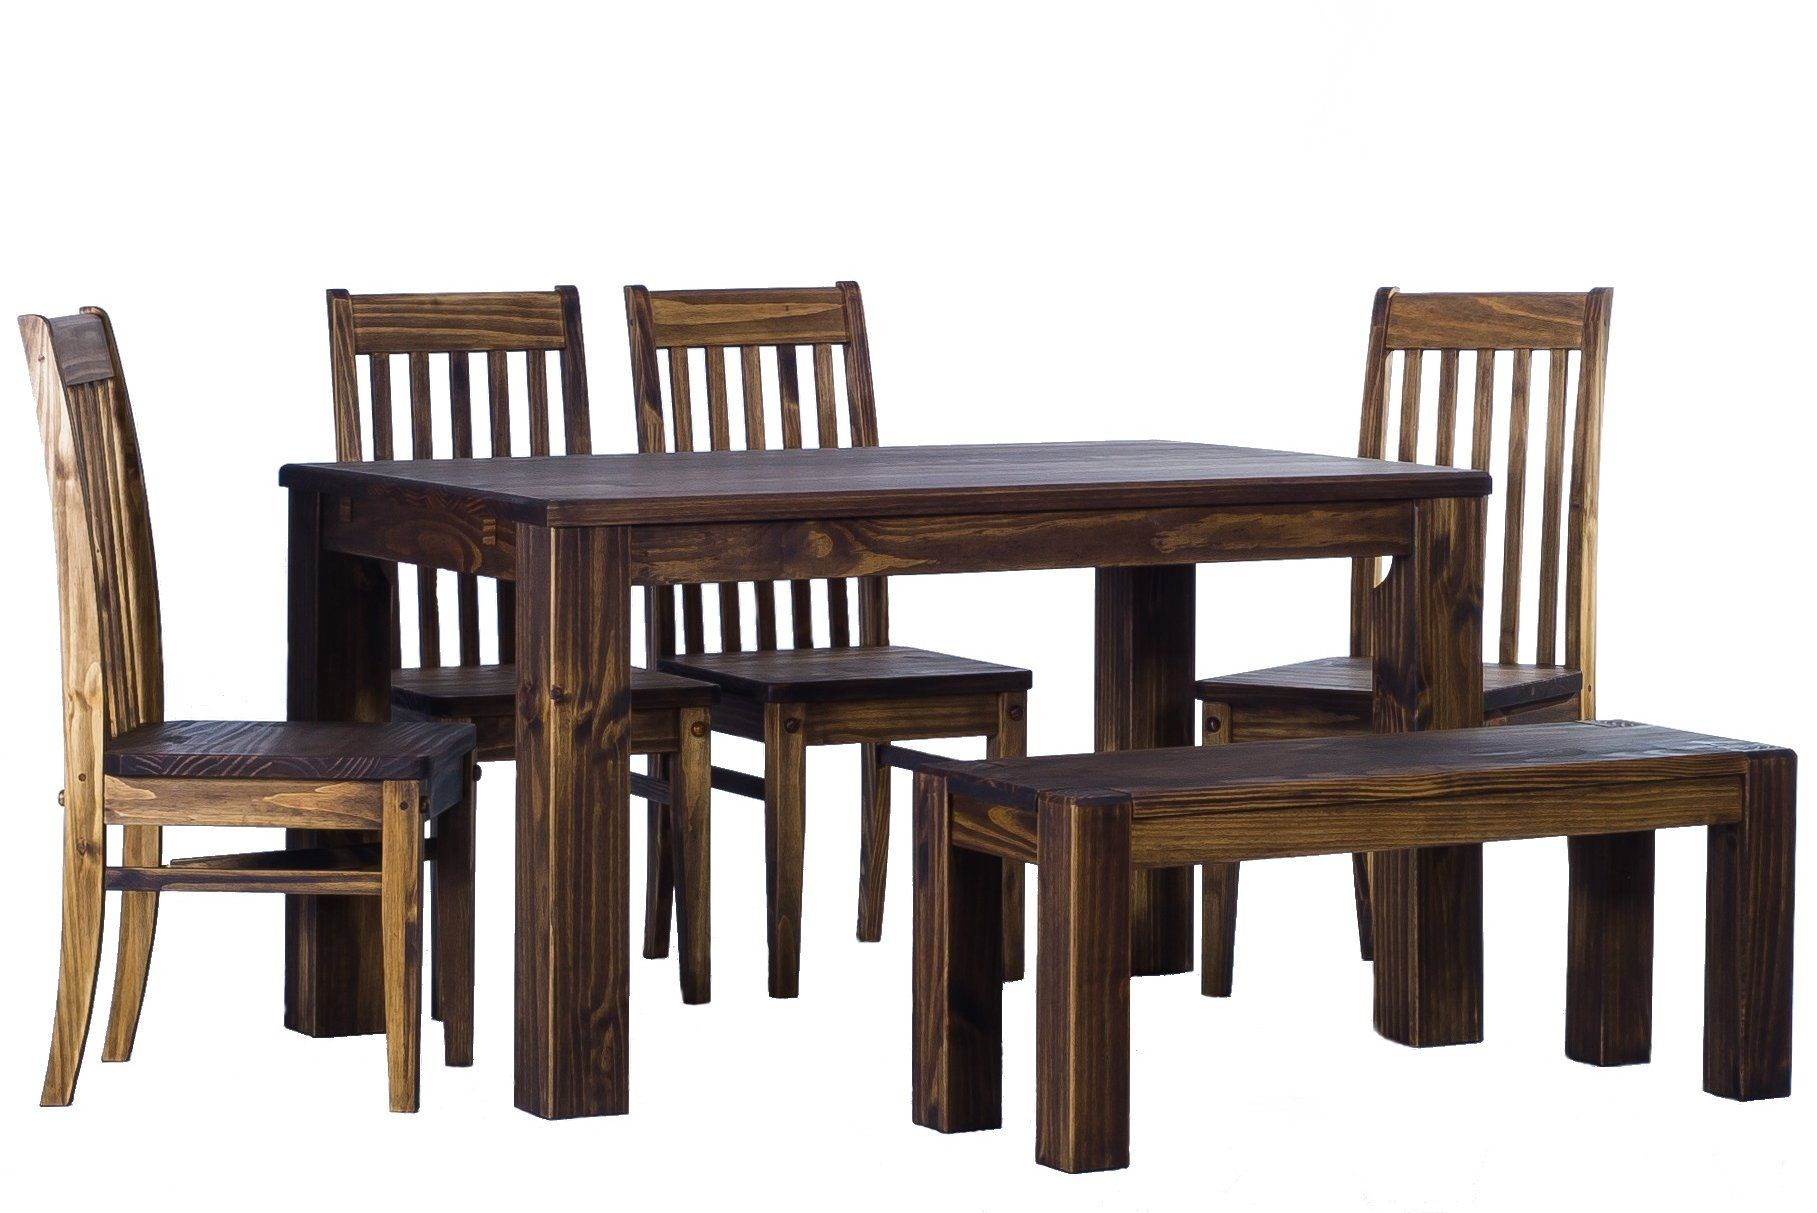 Dining Table Rio Pine With Bench And Four Chairs Dark Brown Solid